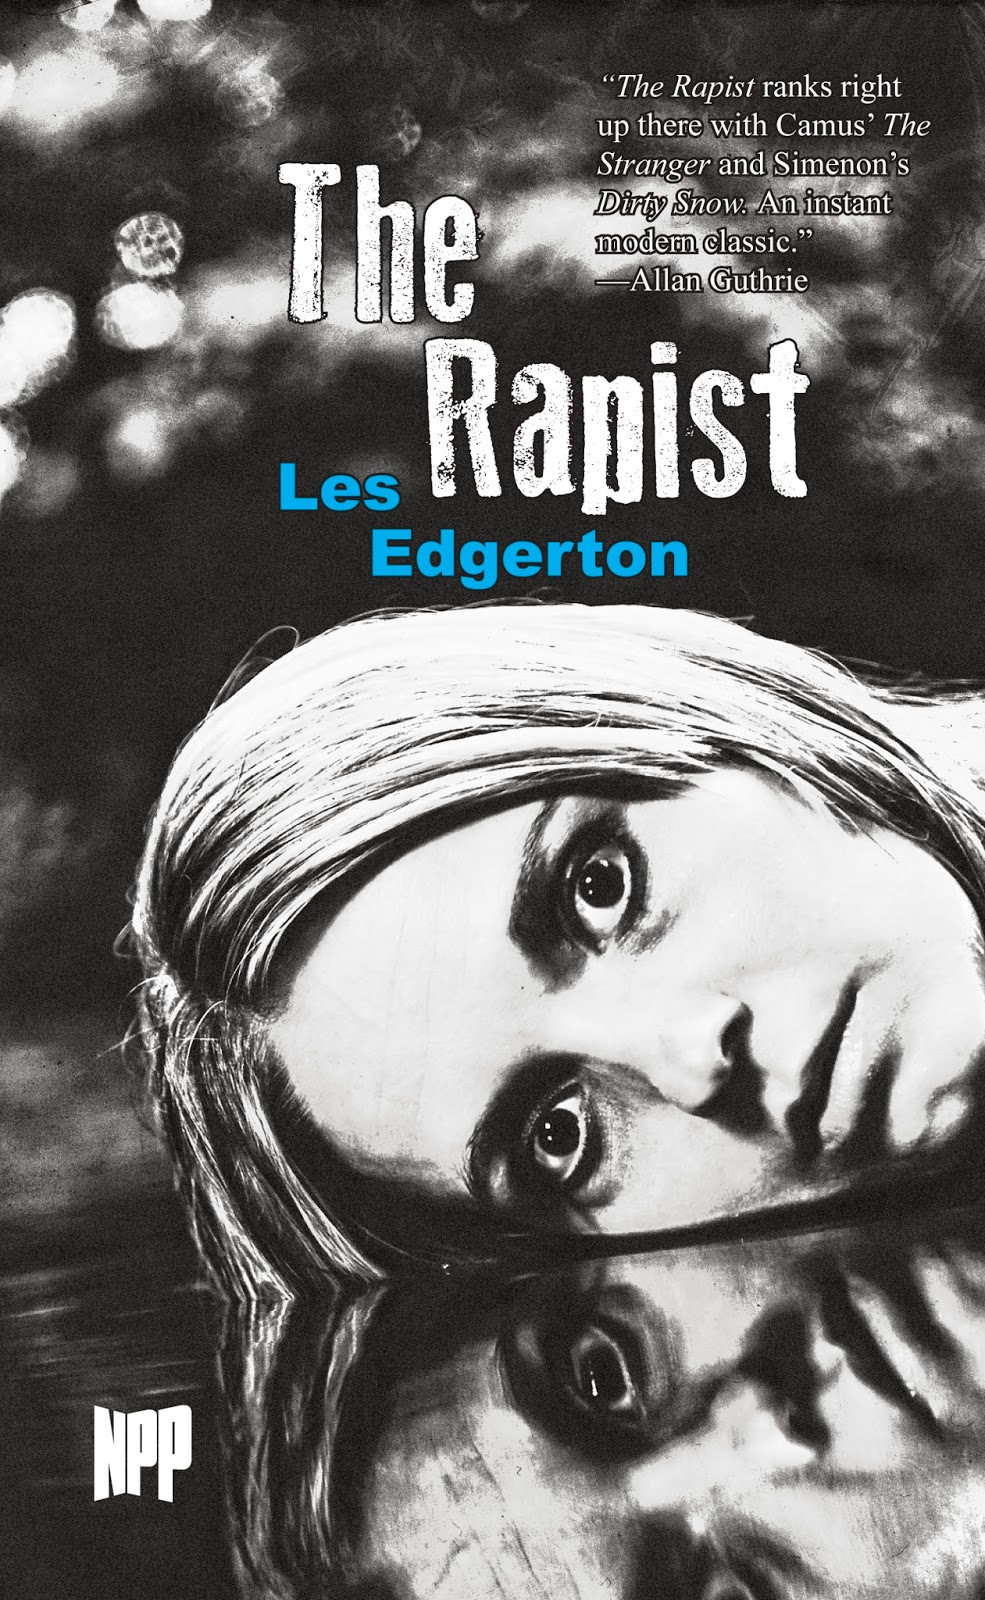 http://www.amazon.com/Rapist-Edgerton-ebook/dp/B00BOXQVF0/ref=sr_1_1_title_0_main?s=books&ie=UTF8&qid=1390504759&sr=1-1&keywords=The+Rapist+by+les+edgerton